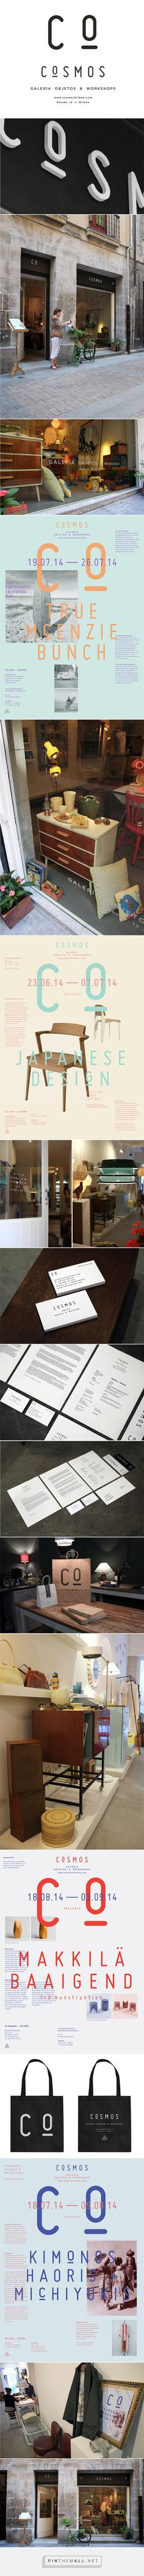 CoSMOS on Behance. - a grouped images picture - Whirlpool Galaxy-Andromeda Galaxy-Black Holes Branding And Packaging, Stationary Branding, Branding Agency, Packaging Design, Identity Branding, Brand Identity Design, Graphic Design Branding, Corporate Design, Retail Design